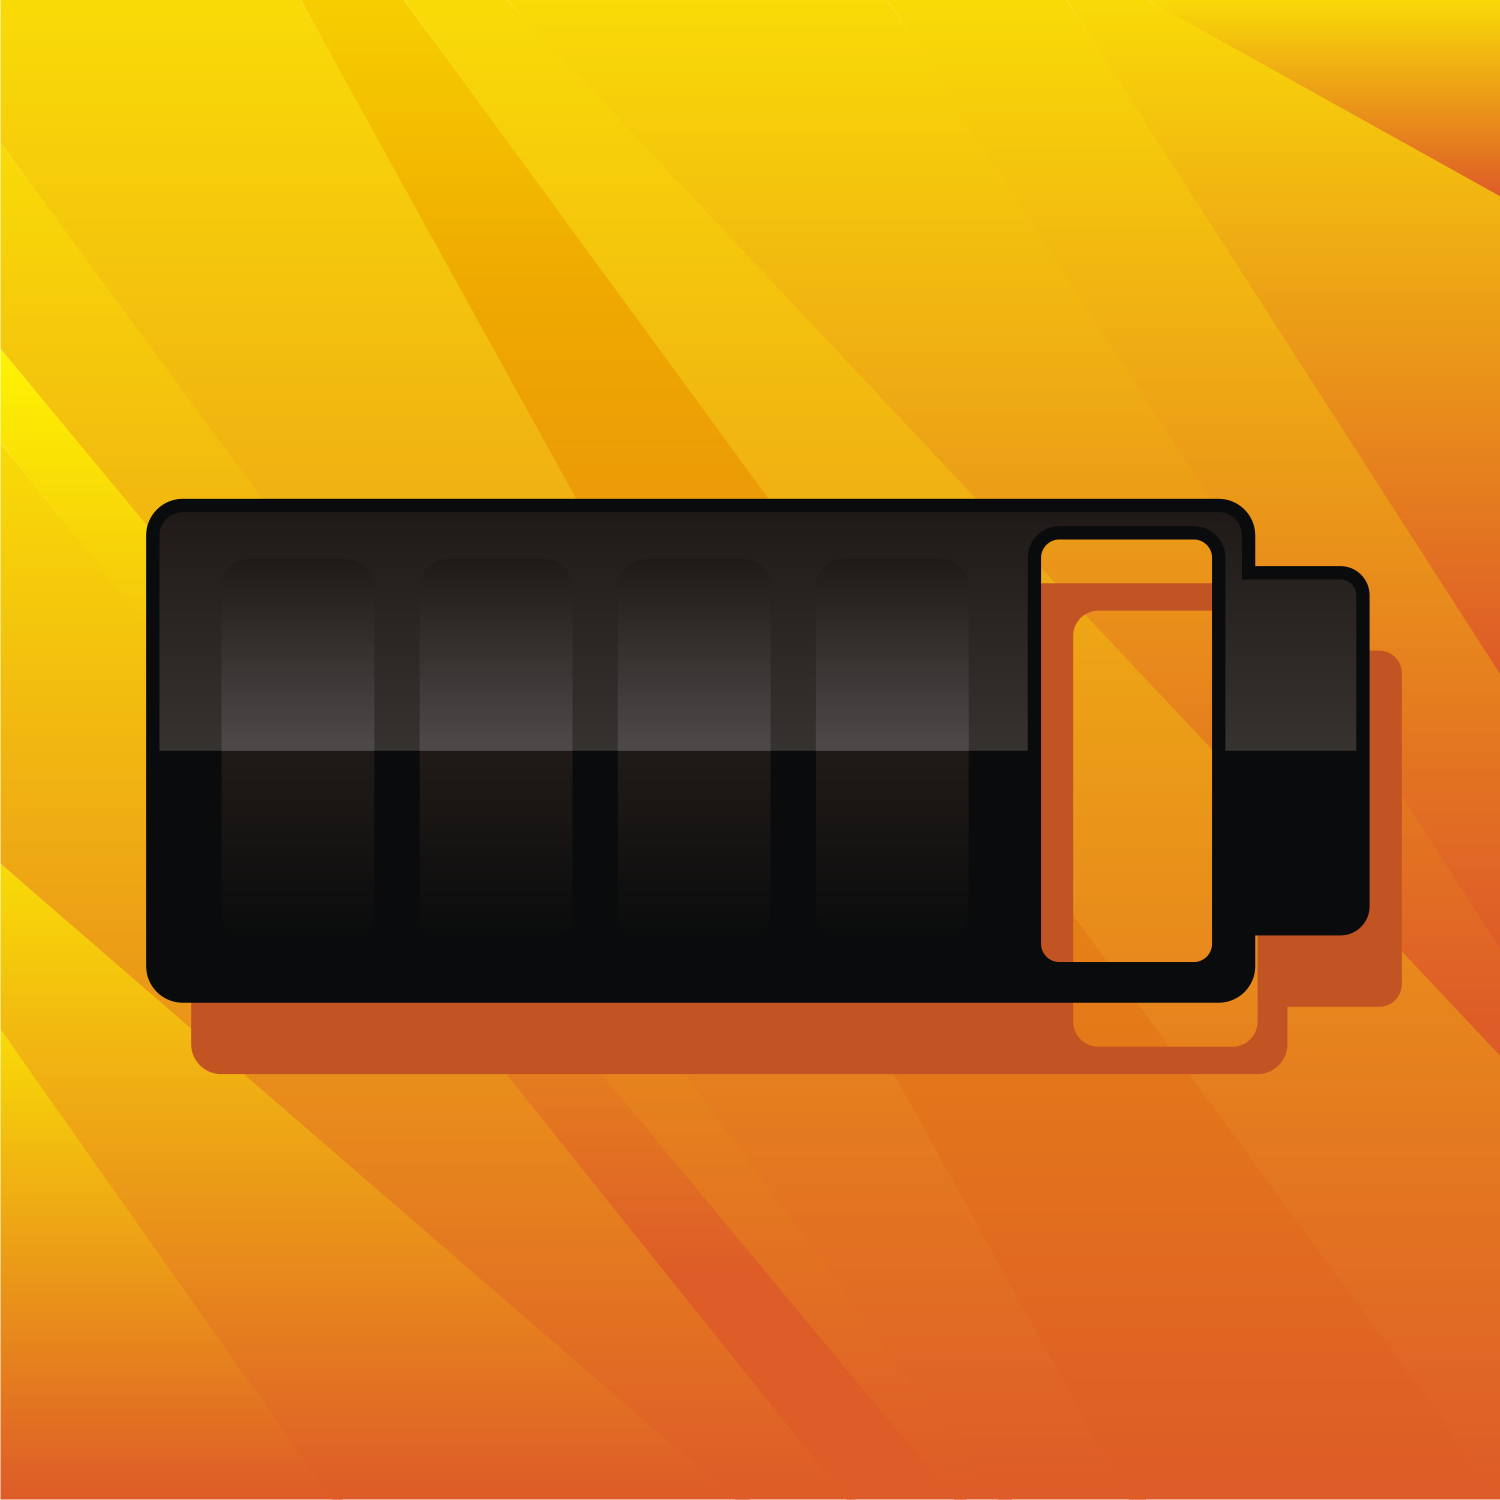 Black mobile phone battery. Free vector image